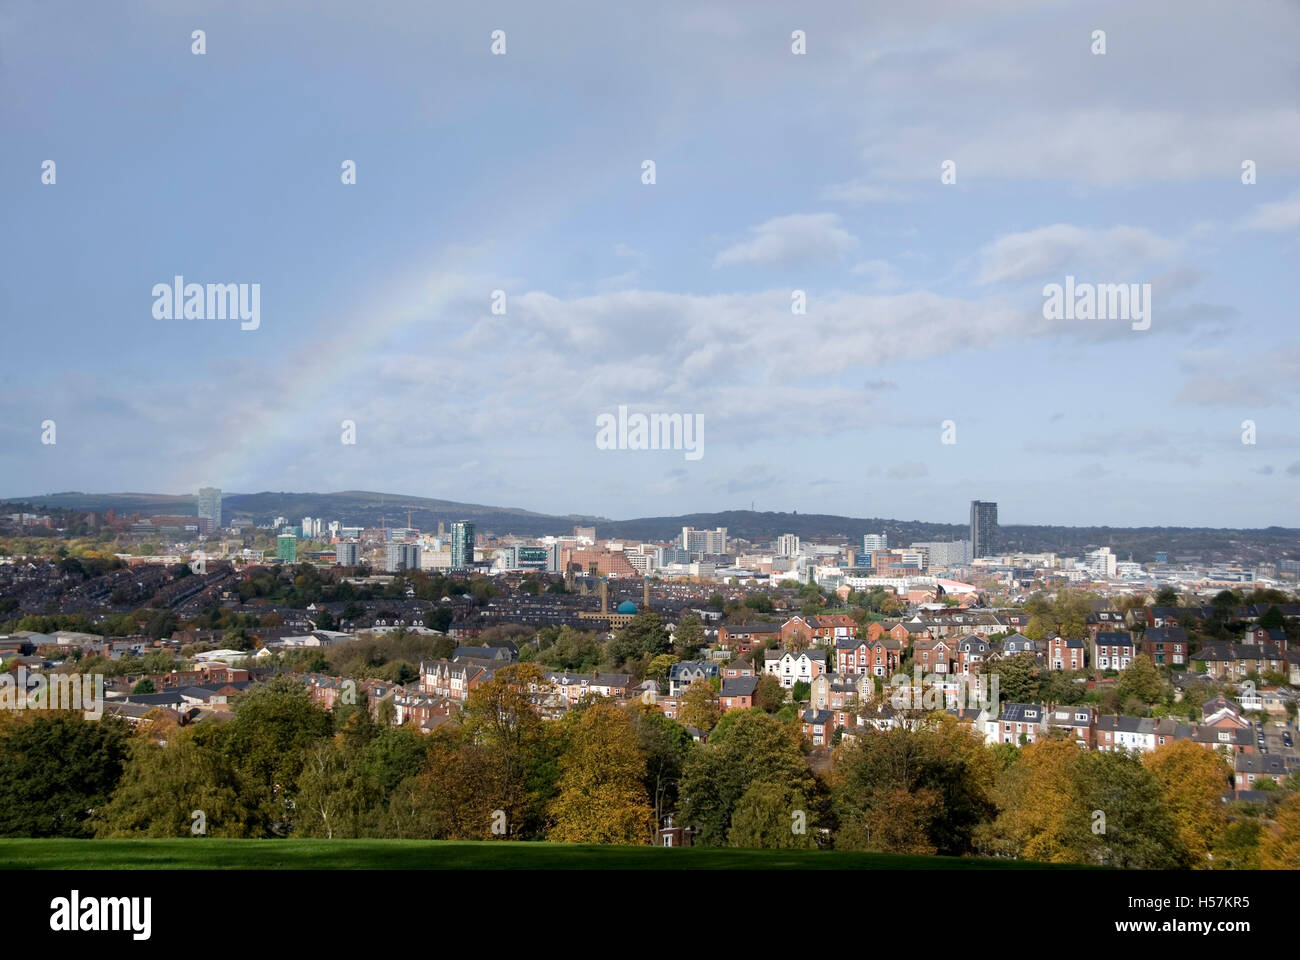 Sheffield, UK 19 Oct 2014: Rainbow over the city strikes Sheffield University Arts Tower on 19 Oct 14 from Meersbrook - Stock Image